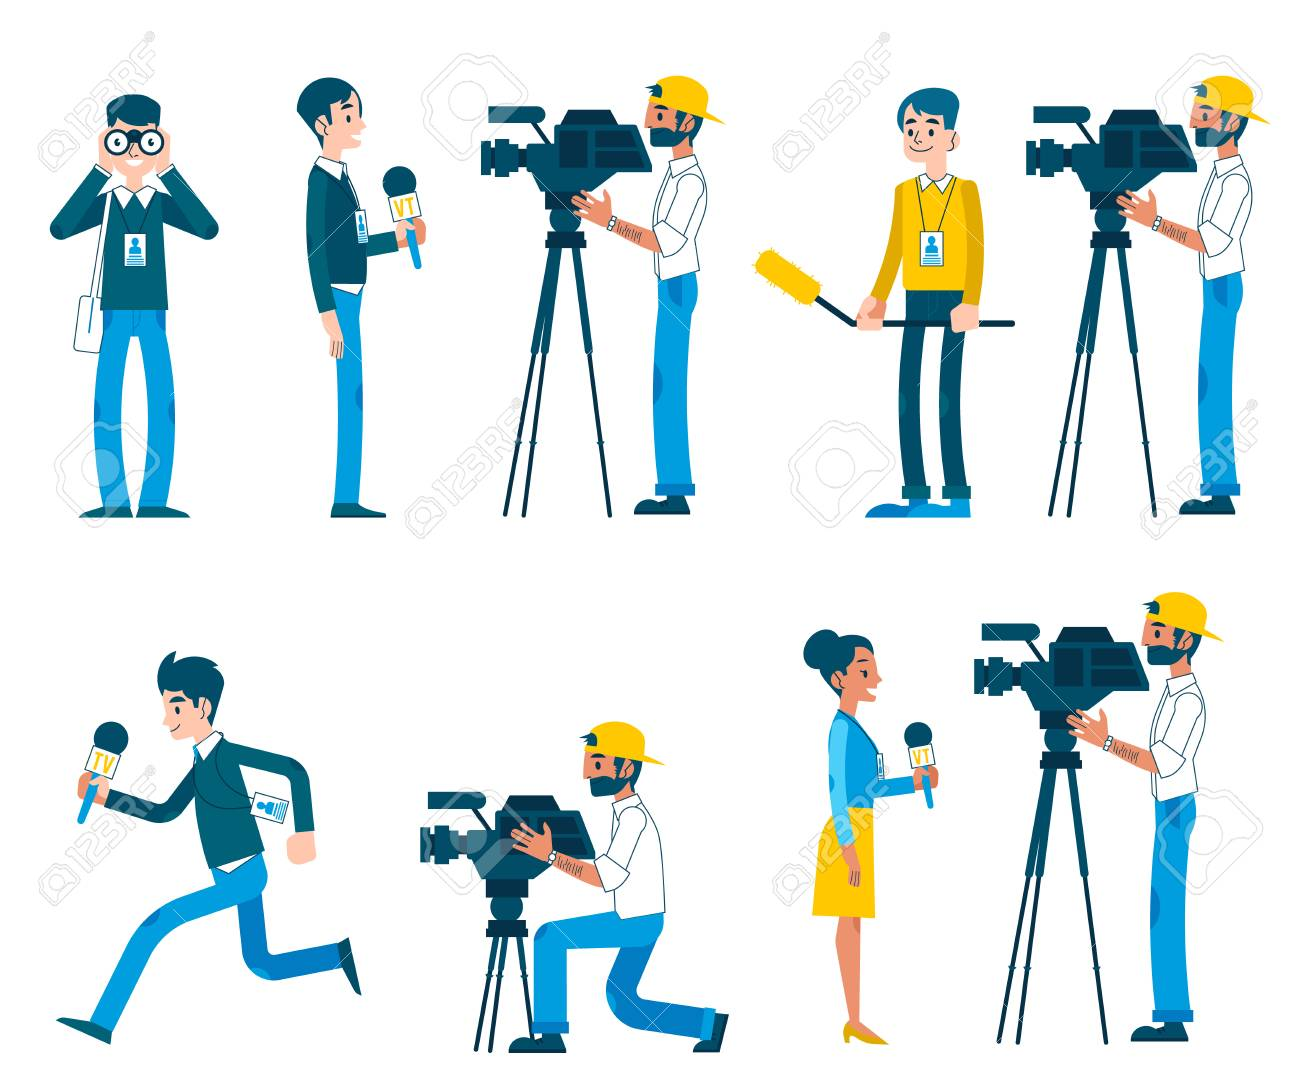 Vector correspondence, reporting live, video interview and journalism concept characters set. Men, women providing reportage for tv, news broadcasting. - 126556052